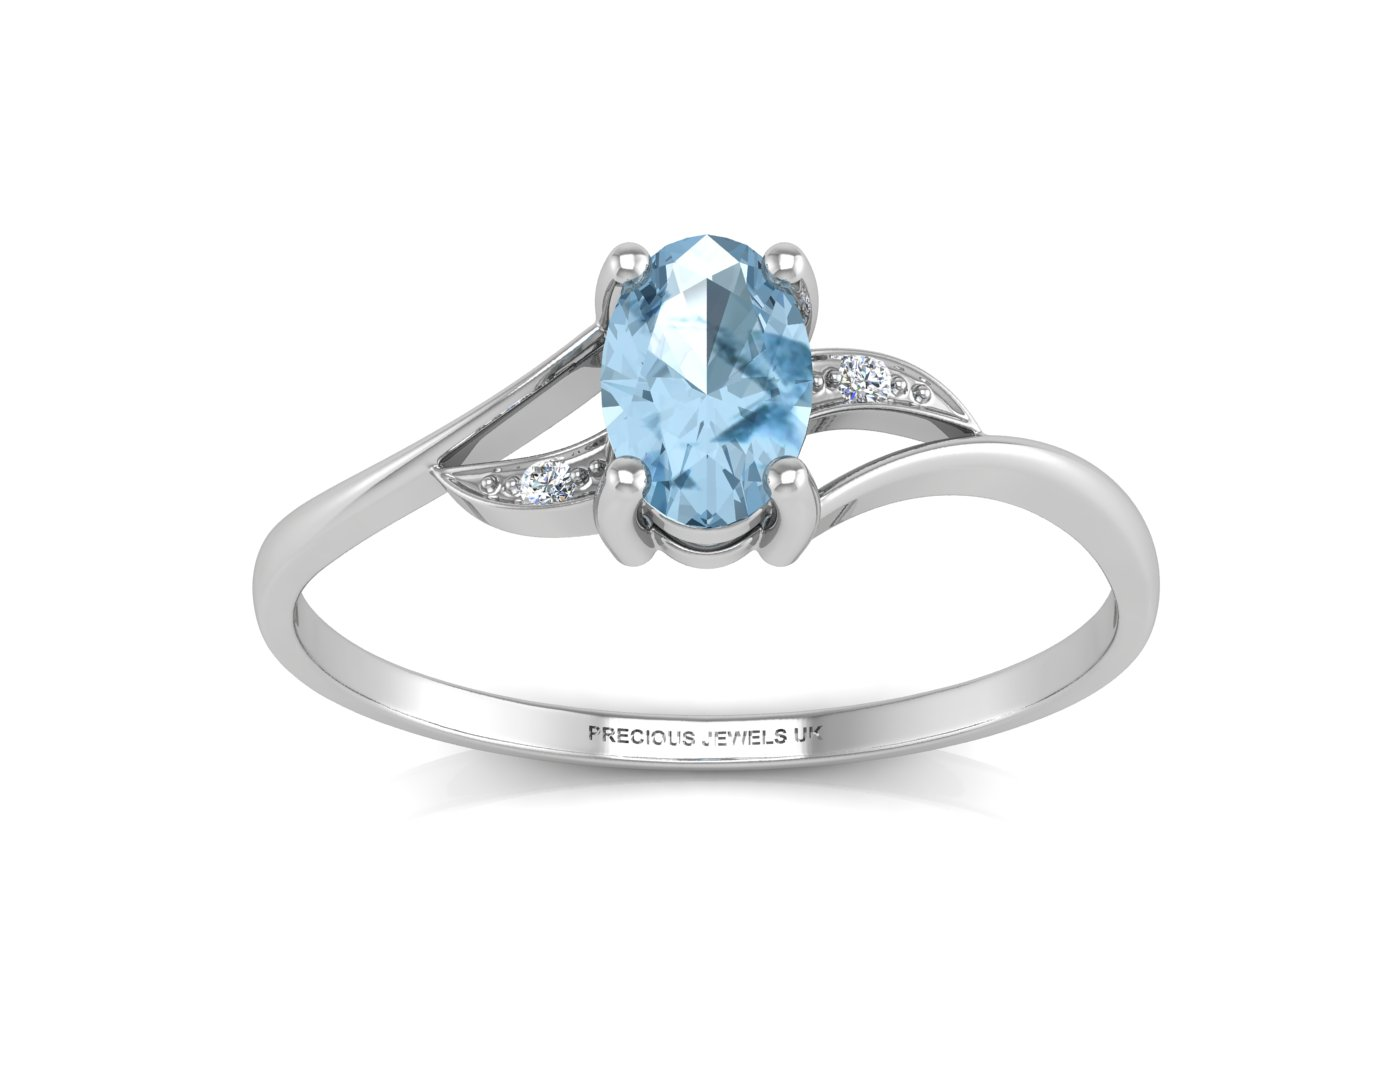 9ct White Gold Diamond And Blue Topaz Ring - Image 3 of 4